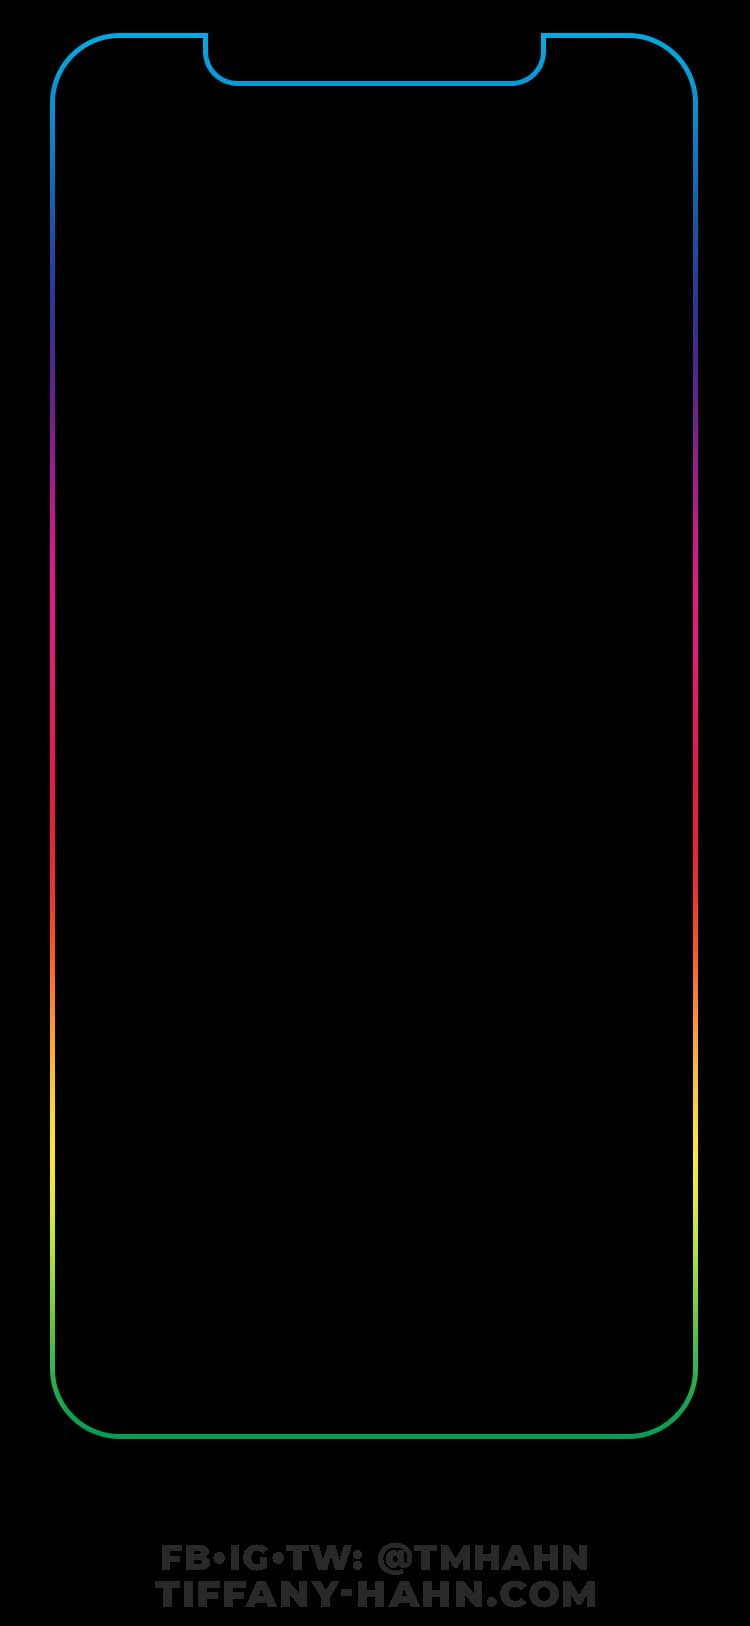 Iphone Xs Max Wallpaper Rainbow Outline V02 Iphone Homescreen Wallpaper Iphone Lockscreen Iphone Wallpaper